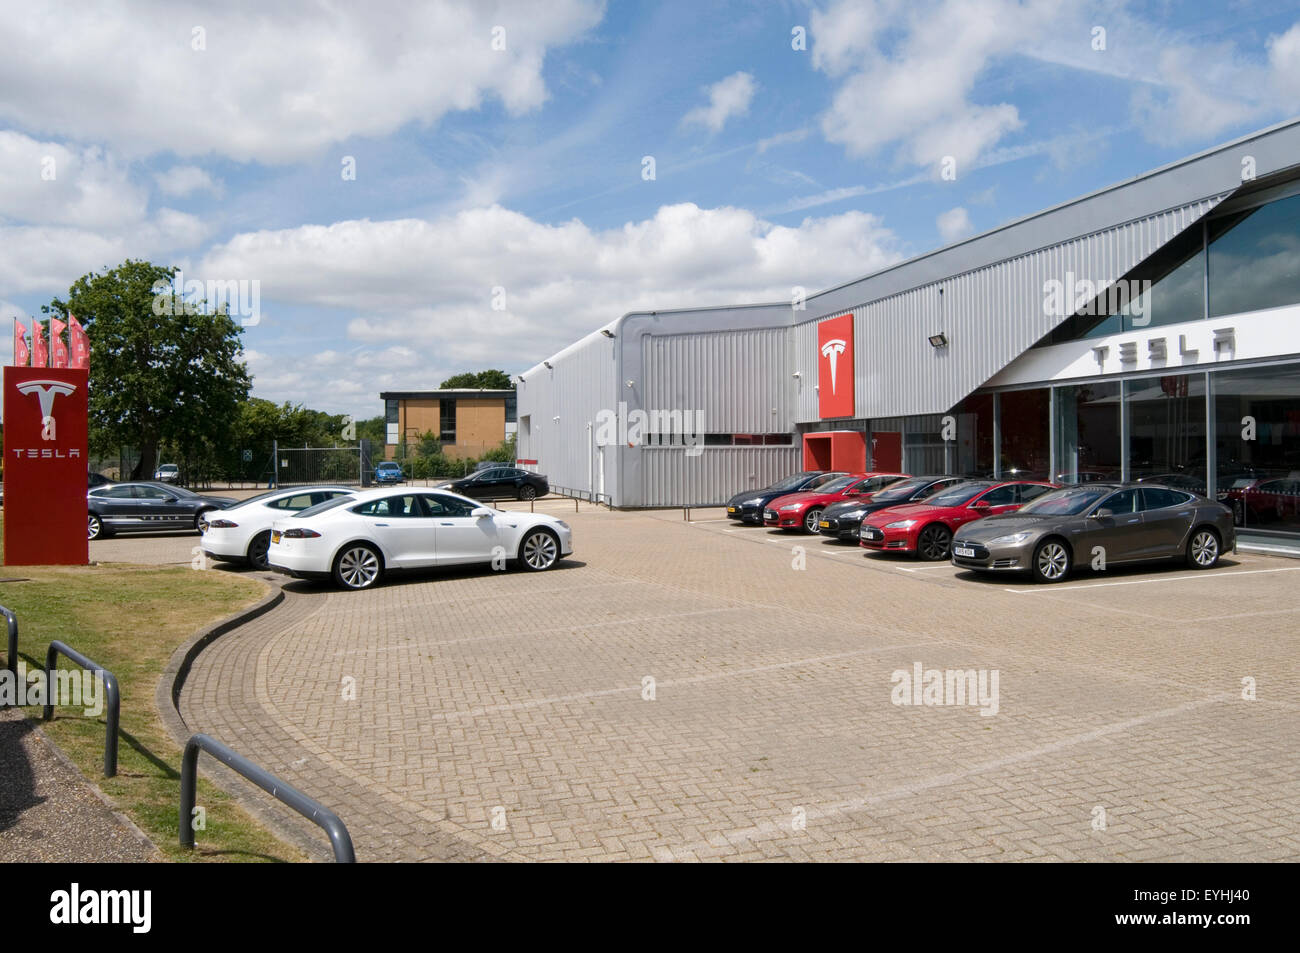 tesla electric car cars dealer dealers dealership dealerships non franchised model s models range Crawley uk showroom - Stock Image